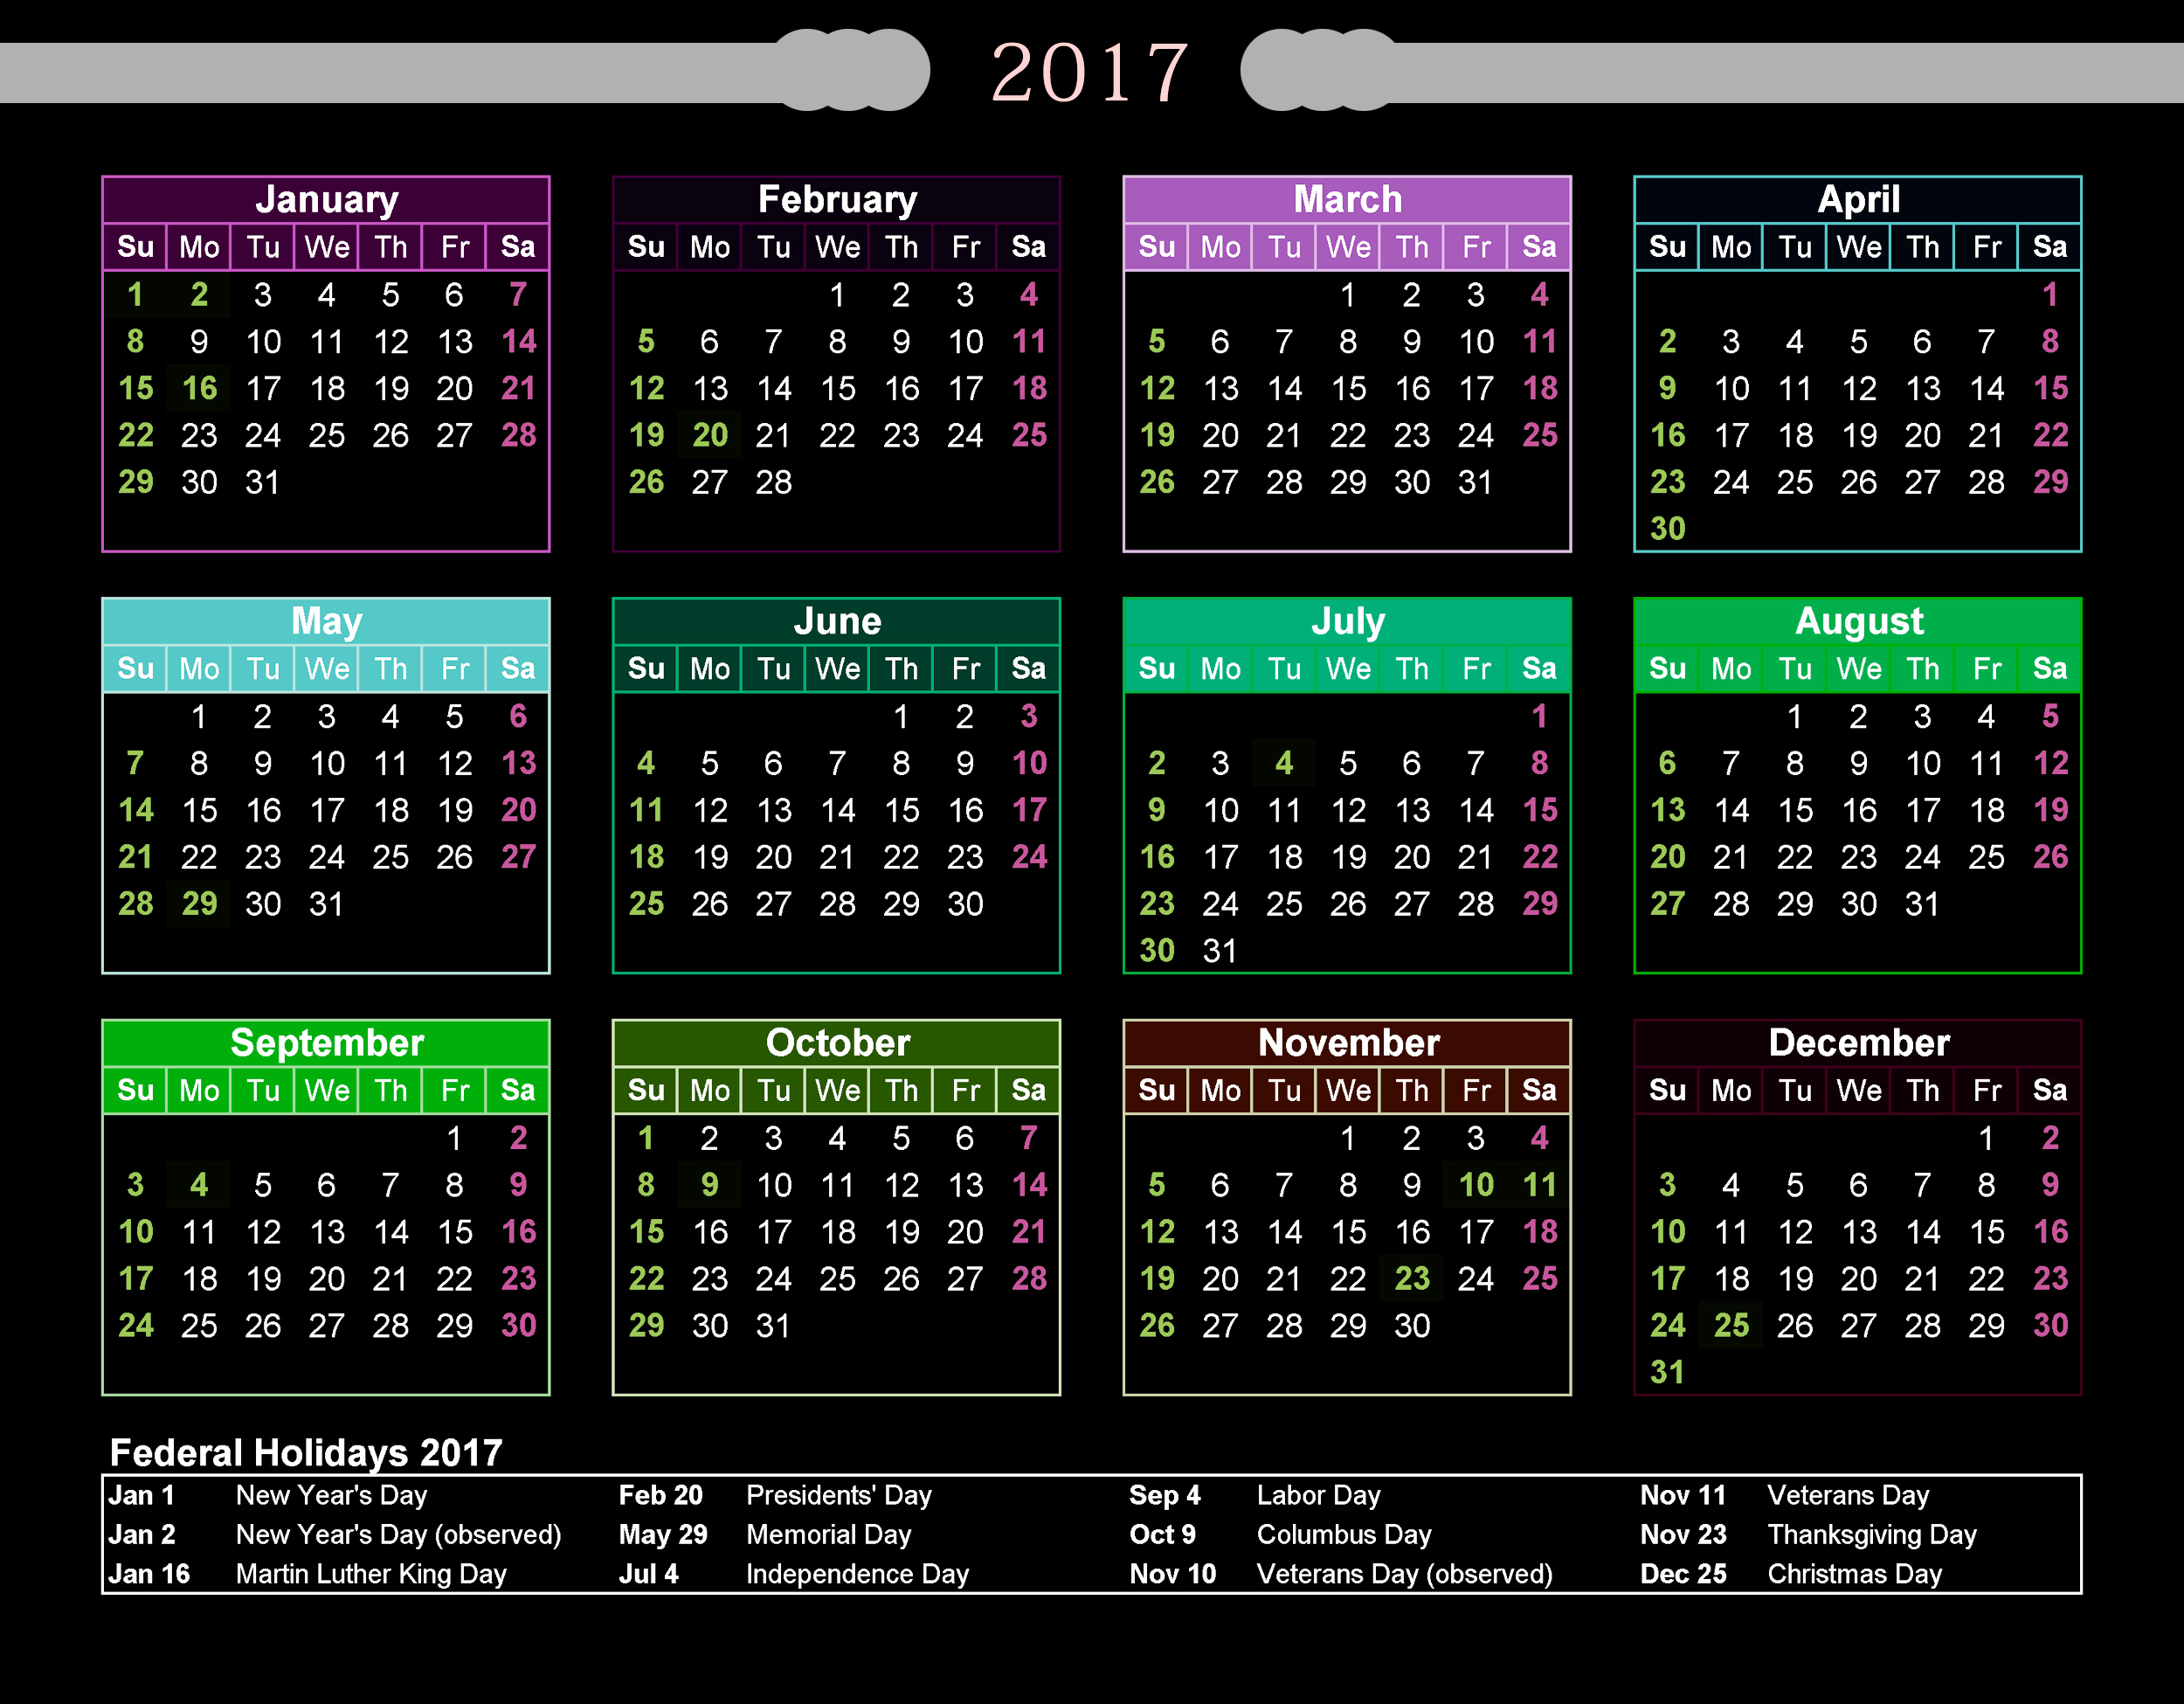 2017 calendar printable with federal holidays